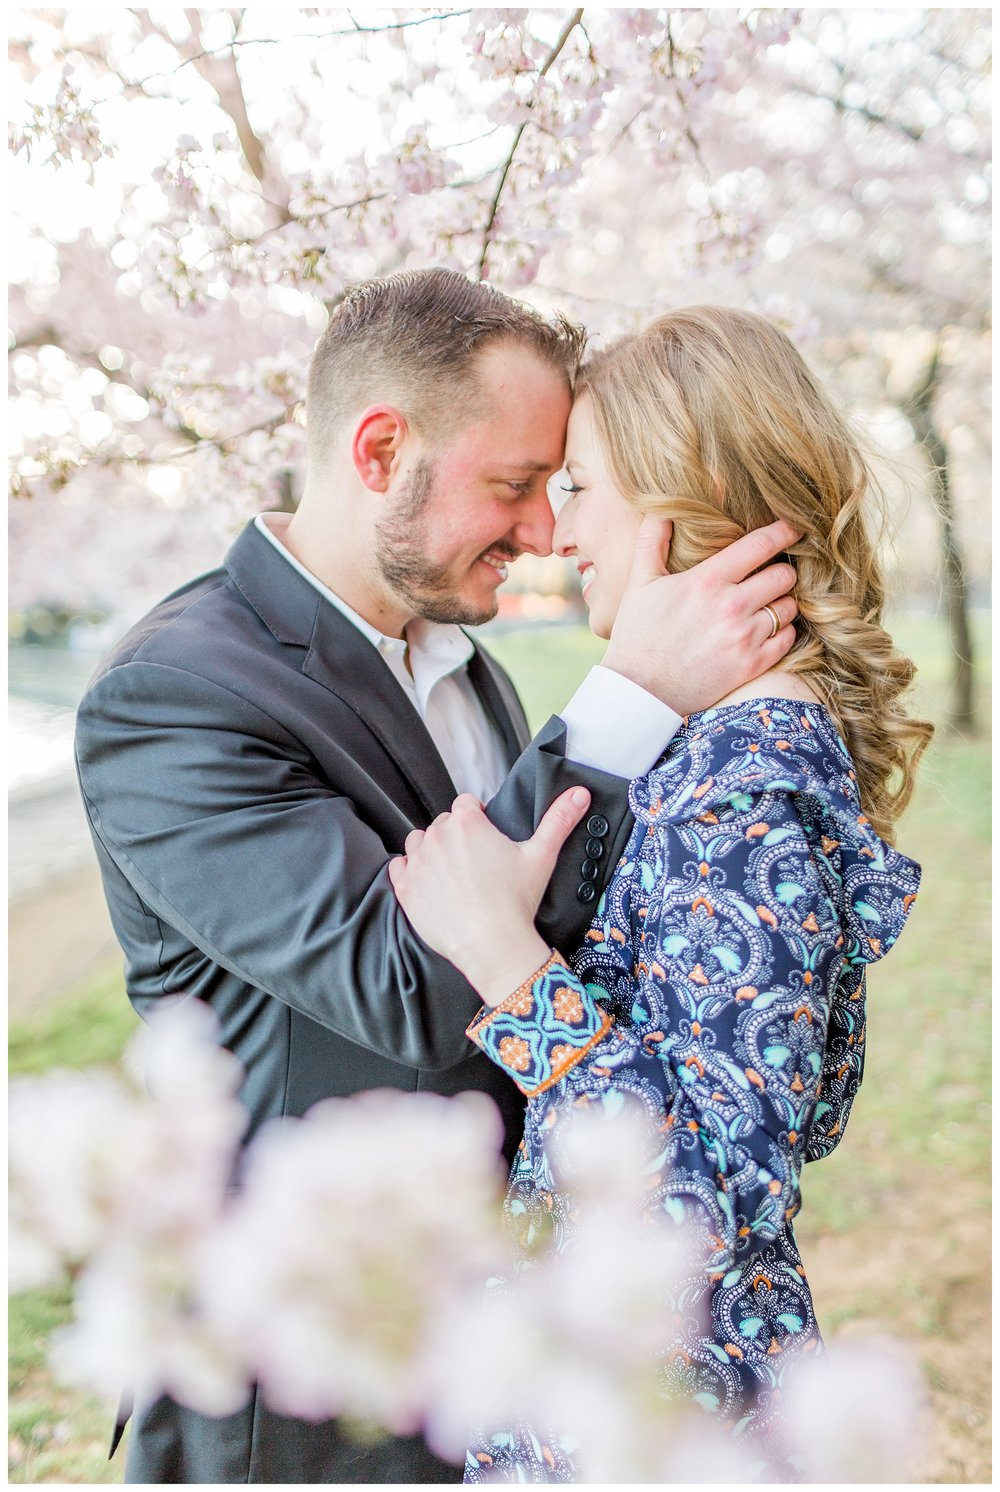 Cherry Blossom Engagement DC Wedding Photographer_0001.jpg